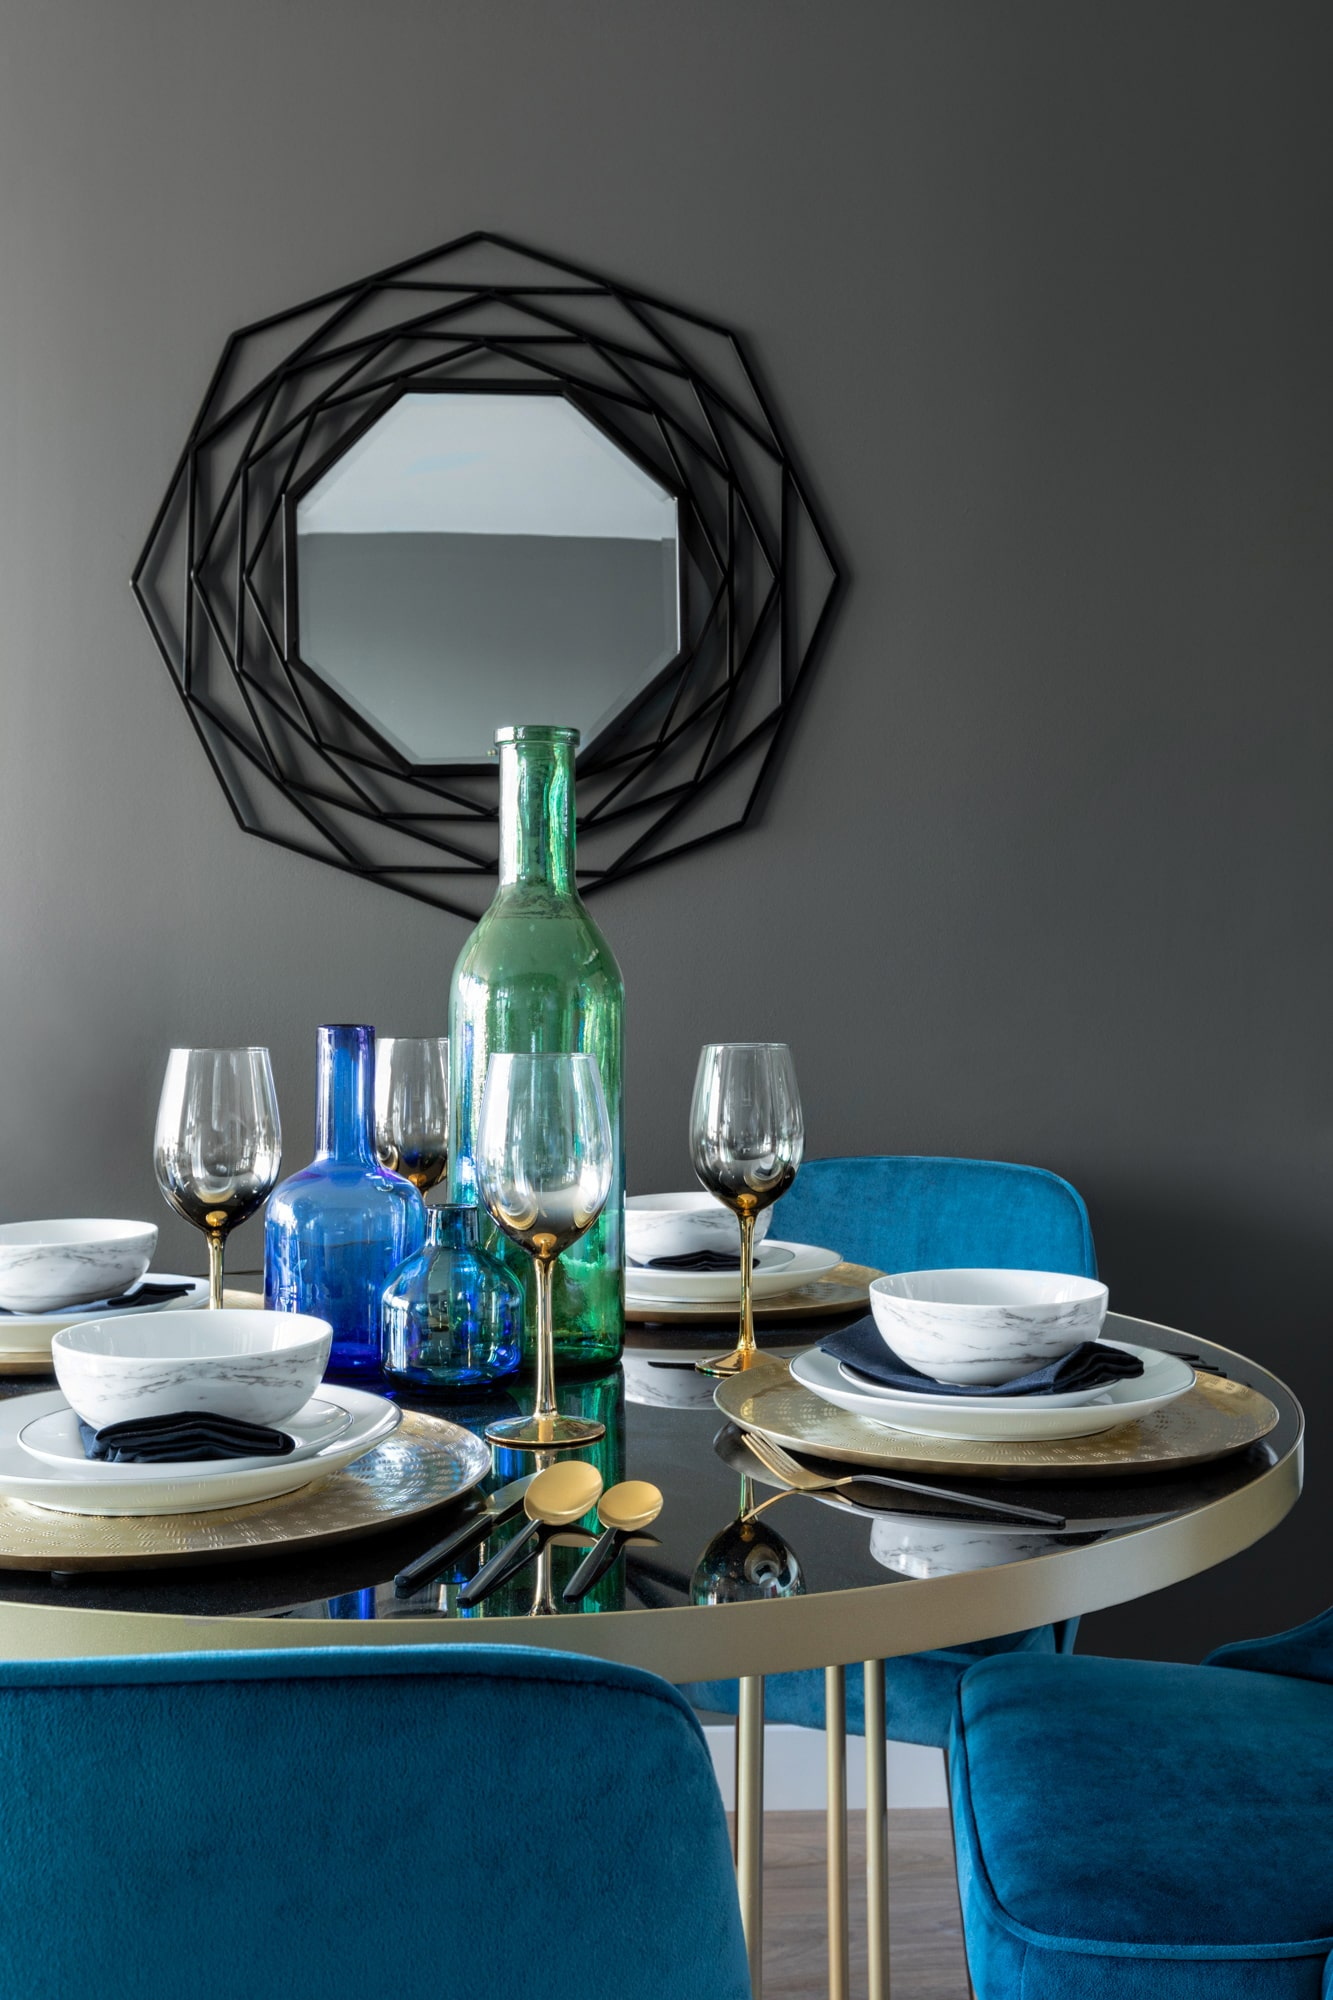 interior detail photo: living room with dark grey walls; round table with blue chairs; round glass table; plates and blue and green bottle